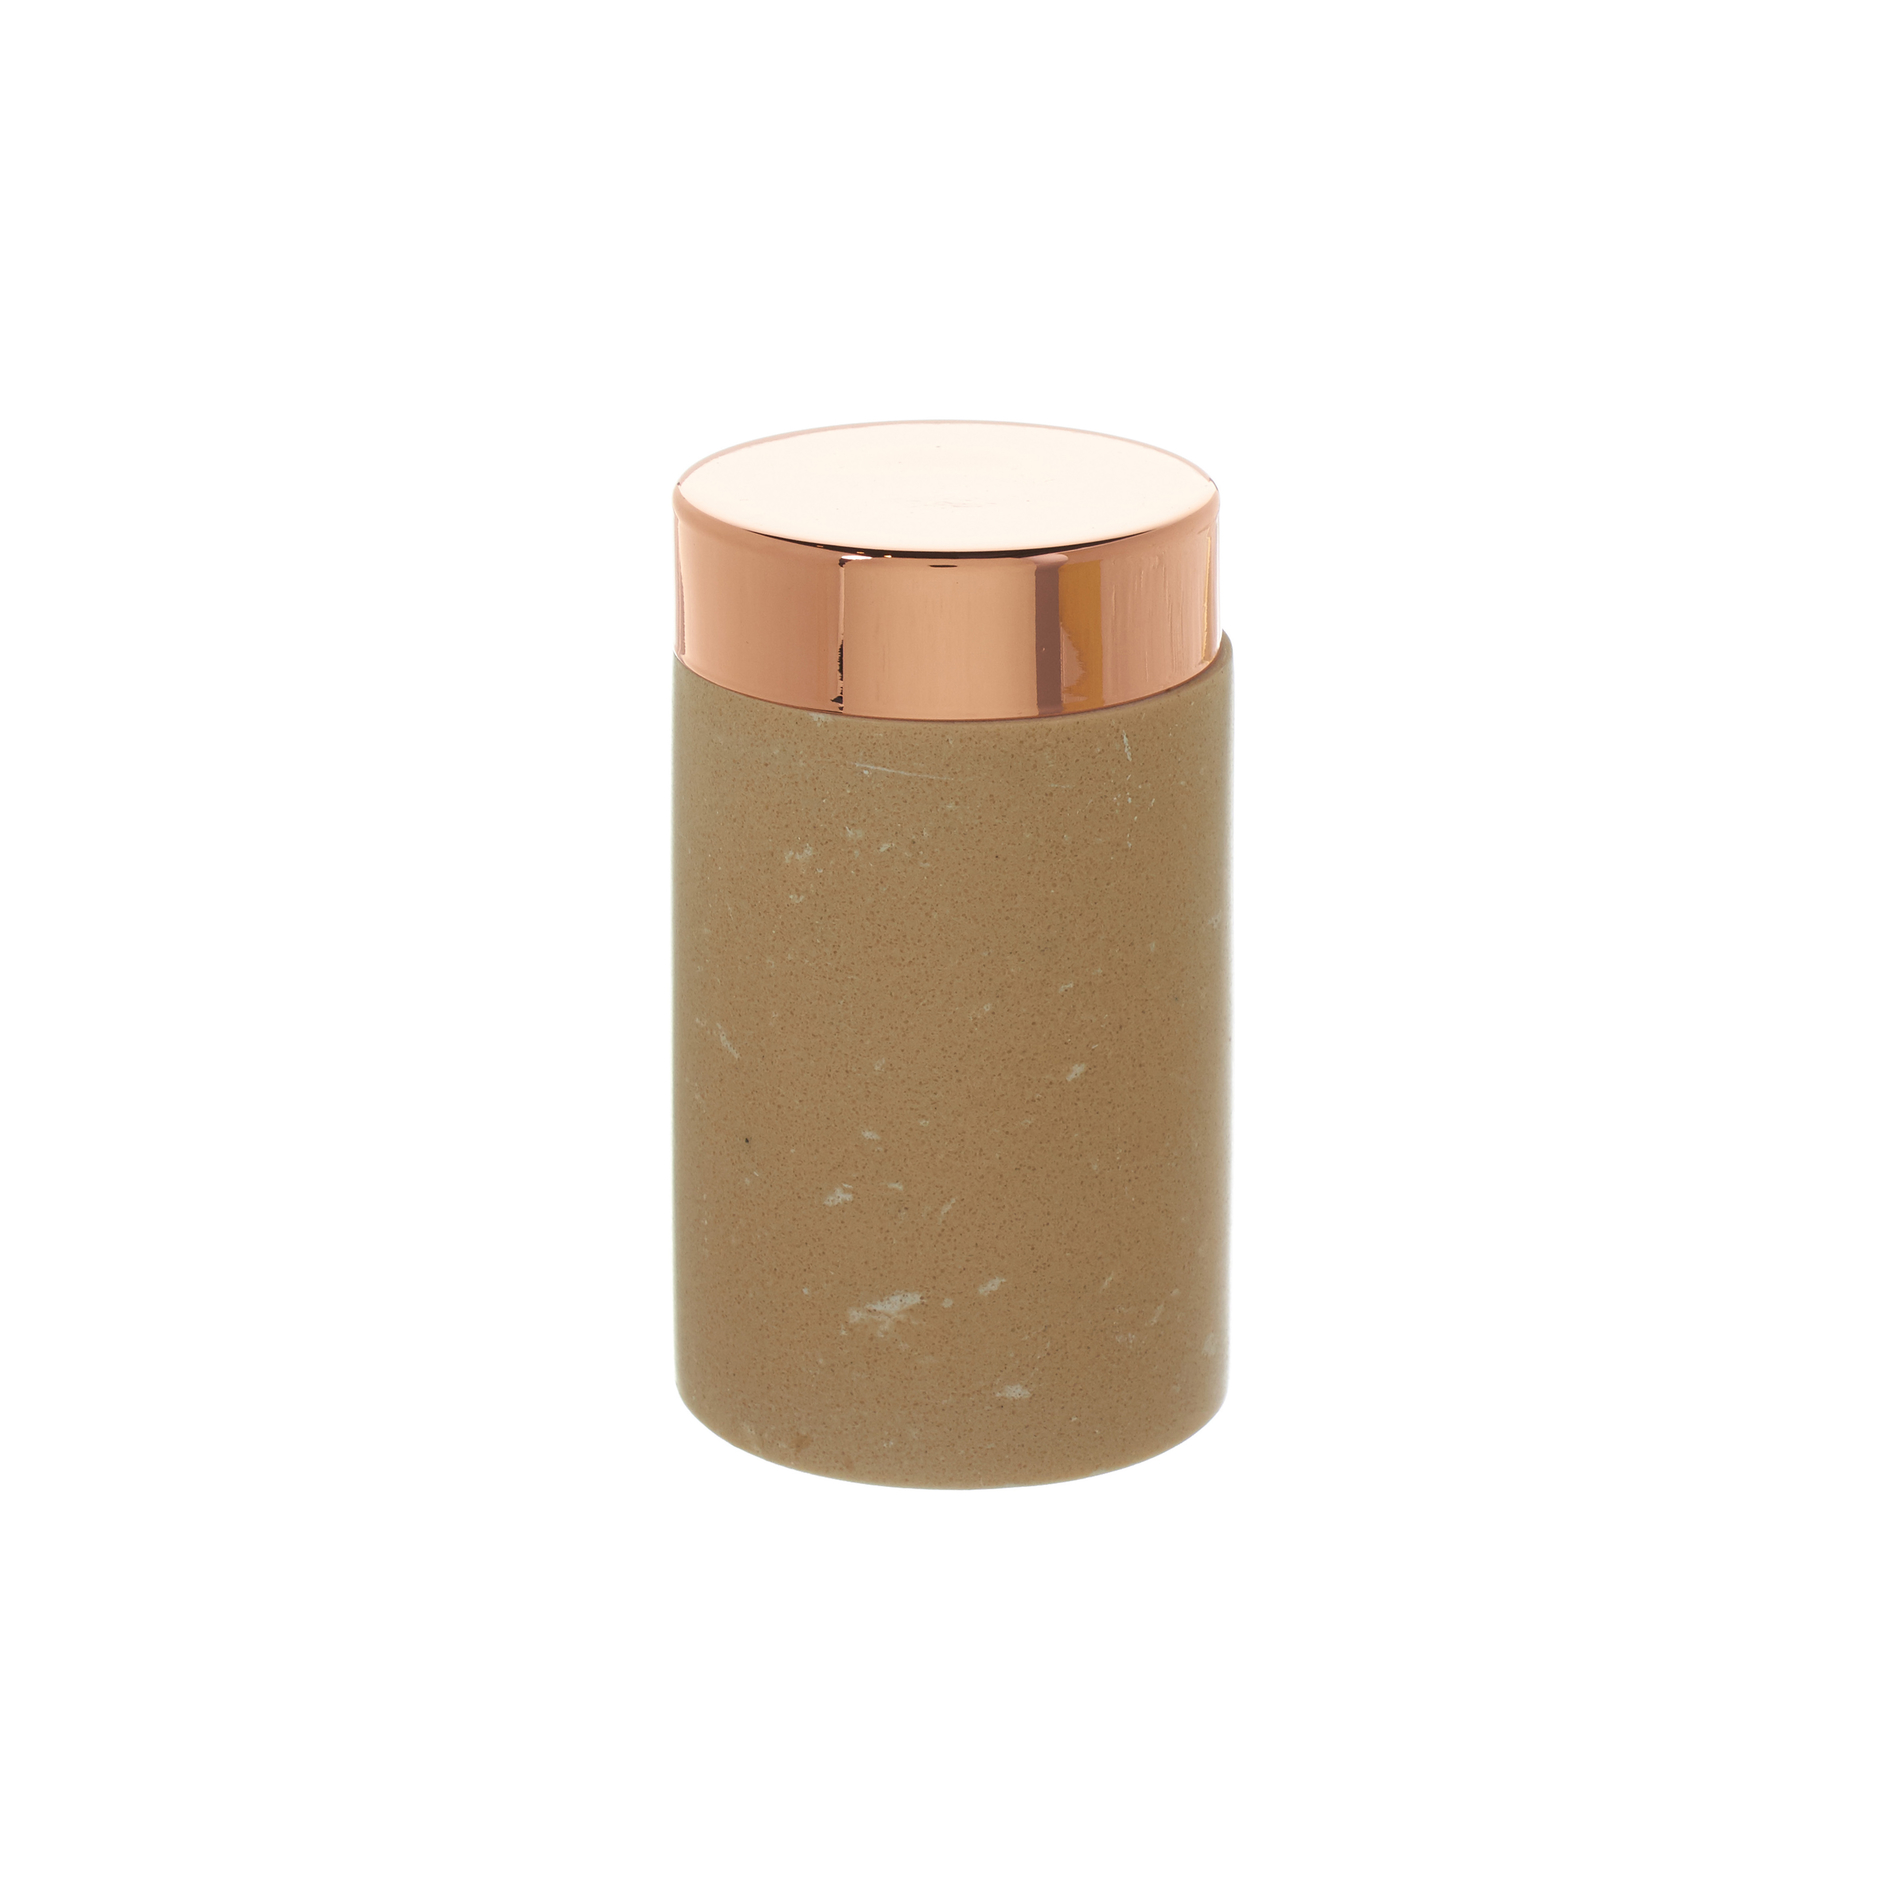 cotton wool container in marble and copper coloured metal. Black Bedroom Furniture Sets. Home Design Ideas